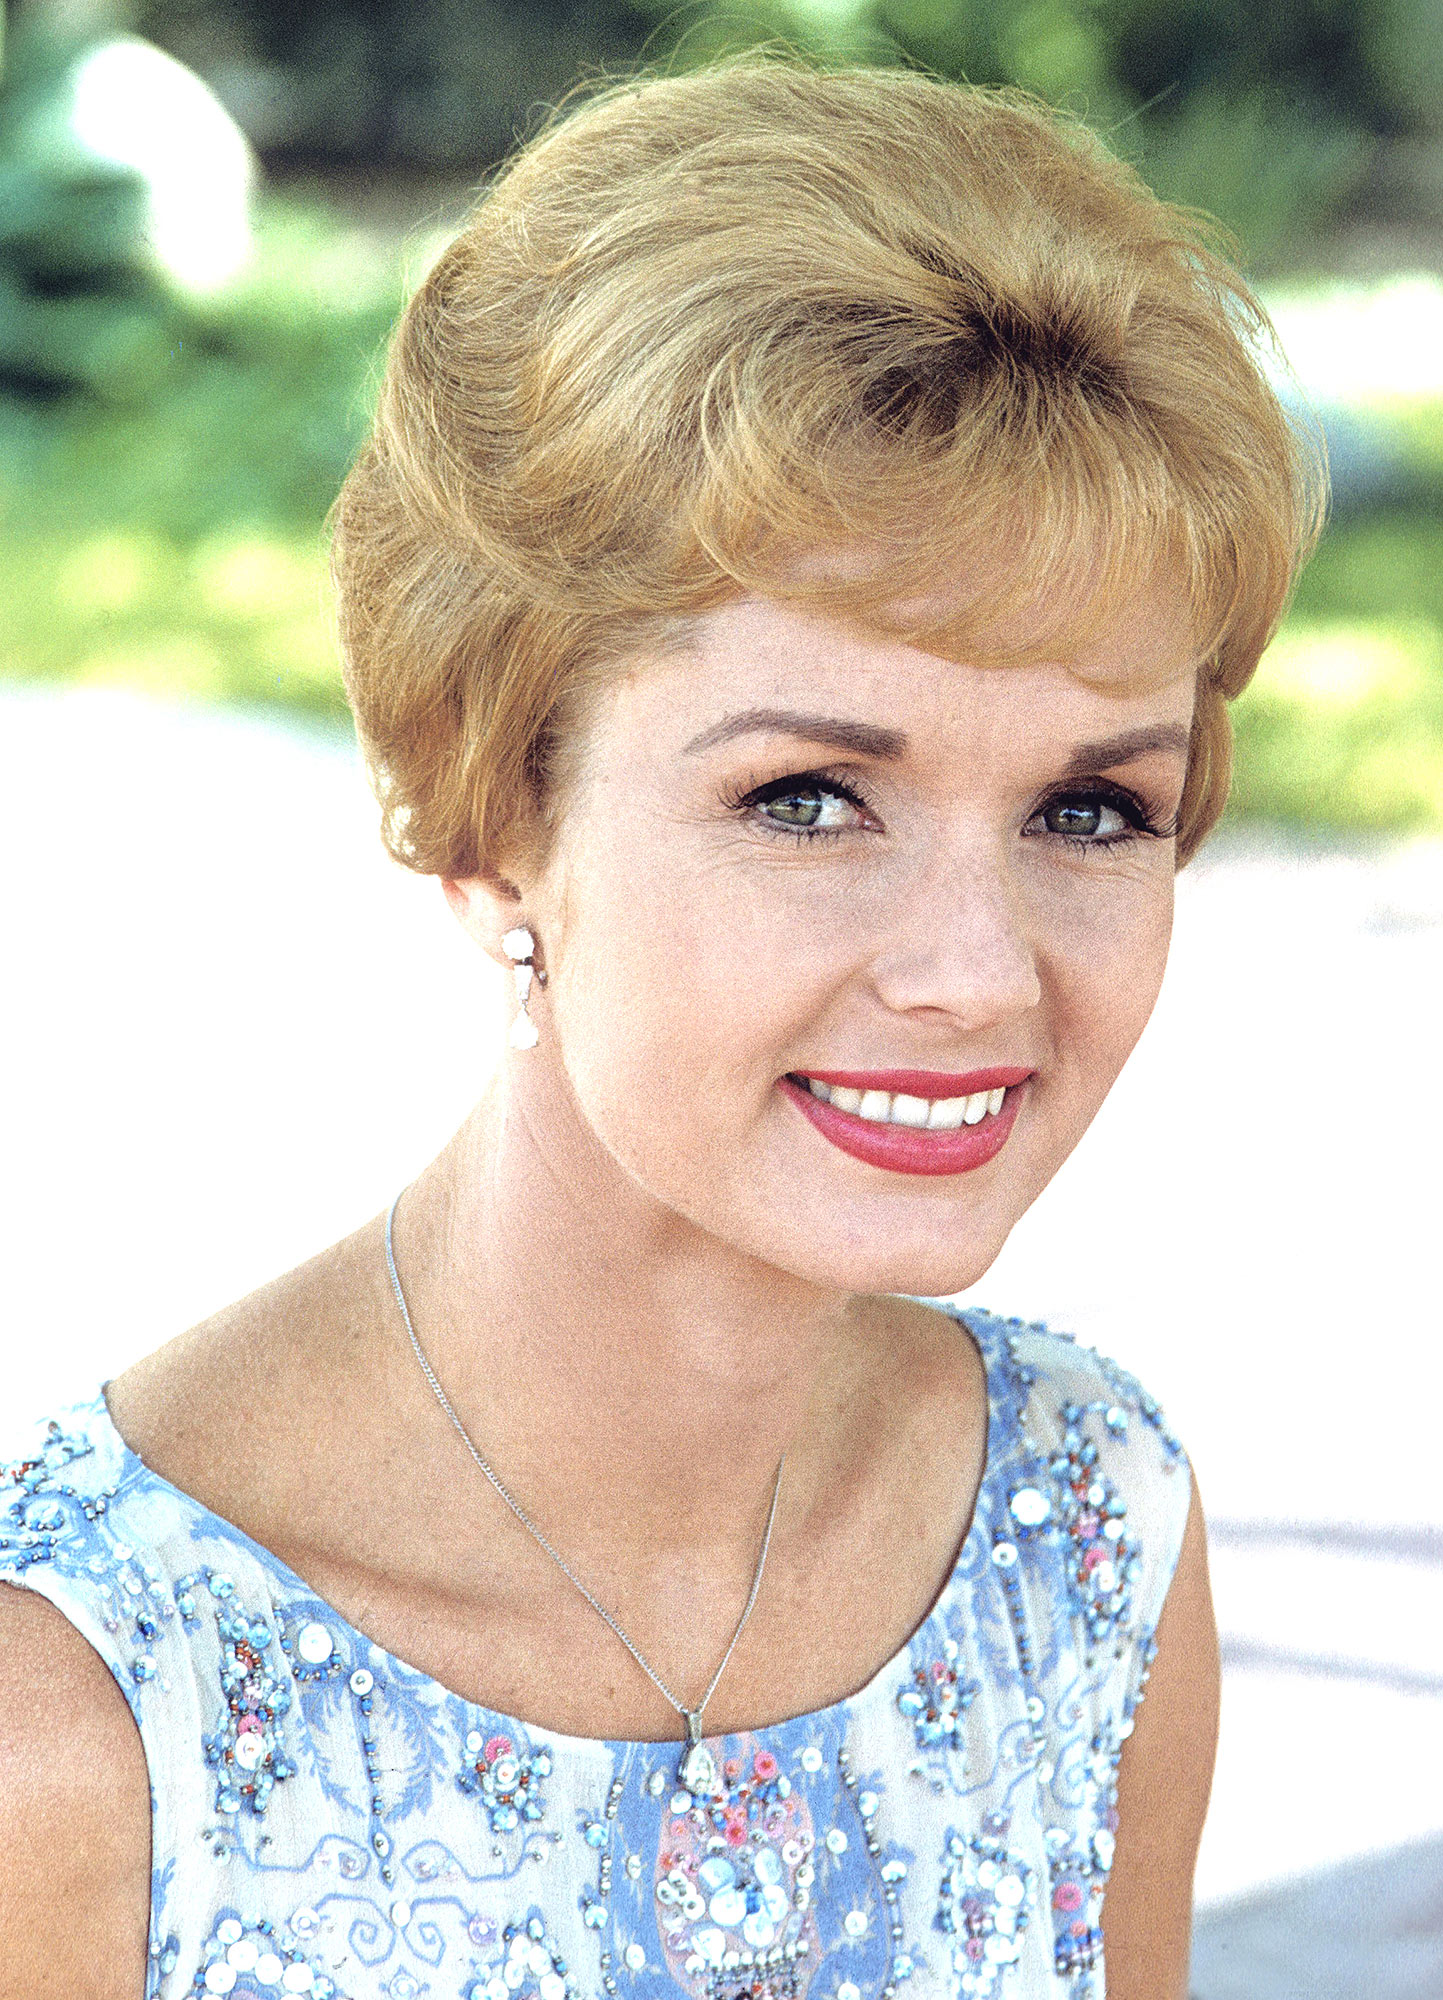 Headshot of Debbie Reynolds, US actress, singer and dancer, wearing a blue and white print pattern sleeveless top, circa 1970. (Photo by Silver Screen Collection/Getty Images)